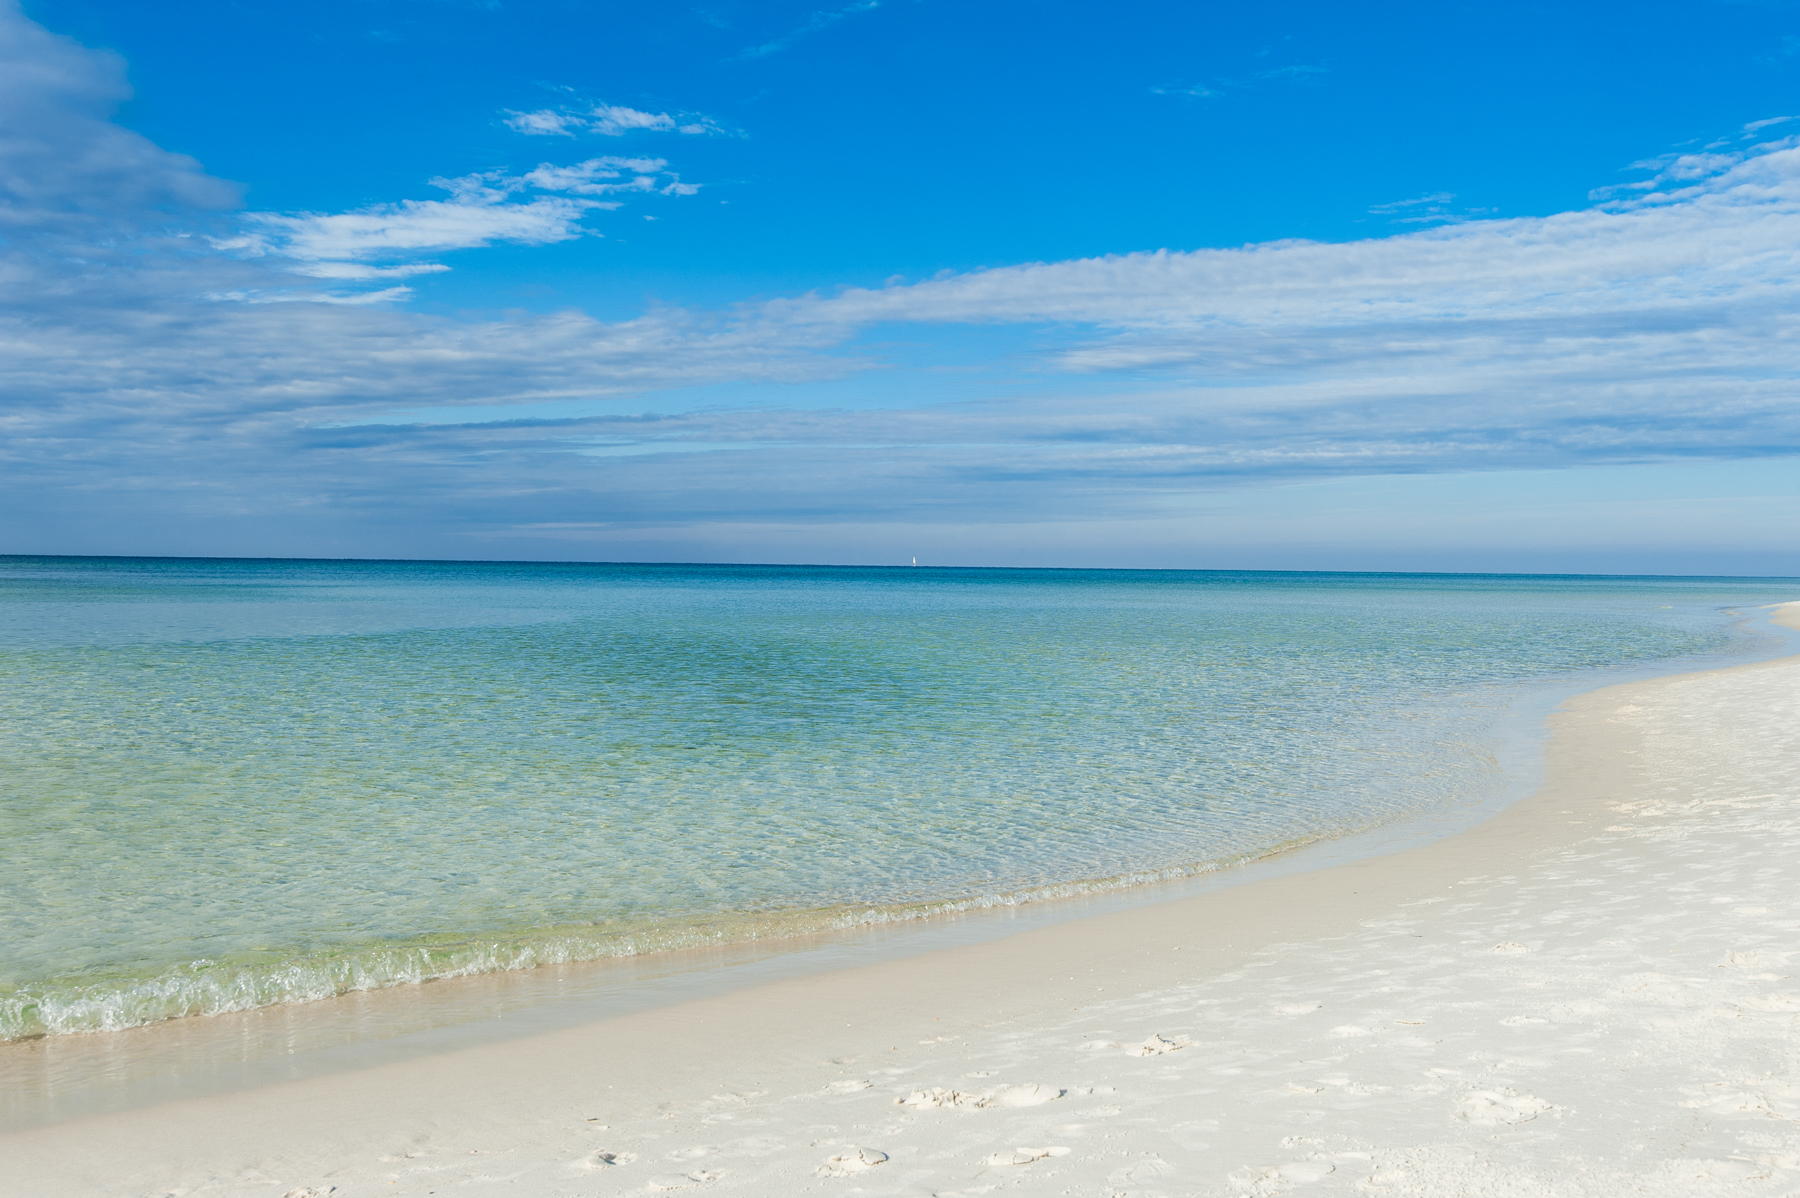 Gulf of Mexico in Panama City Beach, Flo